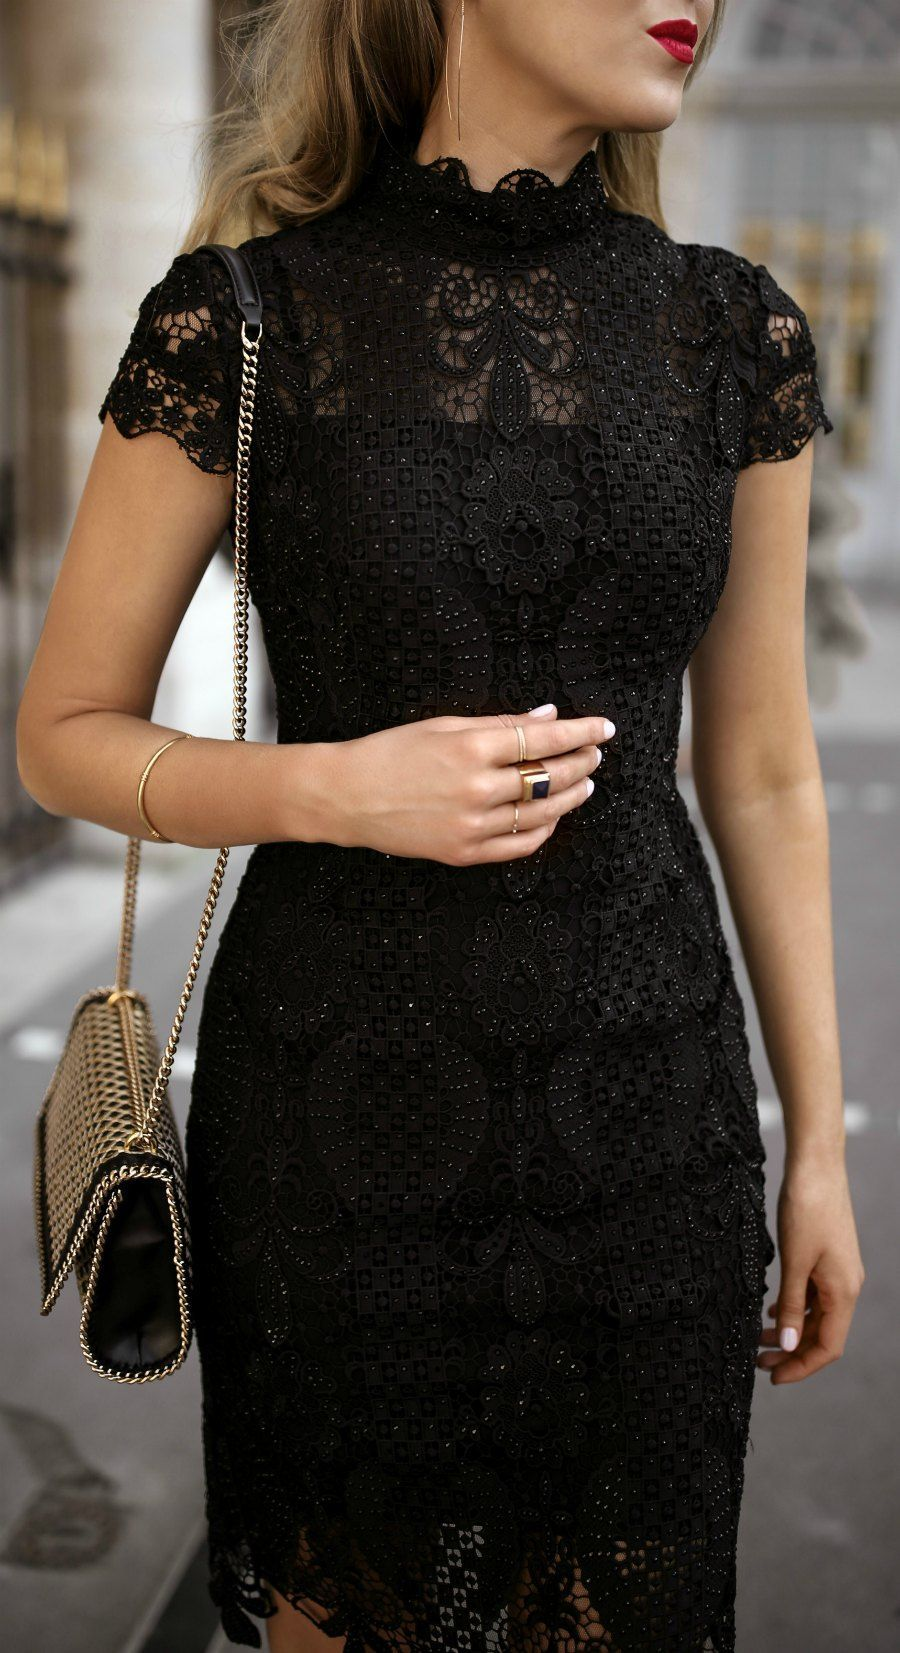 30 Dresses In 30 Days Day 11 What To Wear To A Cocktail Attire Wedding Black Lace Short Sleev Cocktail Attire Cocktail Wedding Attire Cocktail Dress Prom [ 1653 x 900 Pixel ]